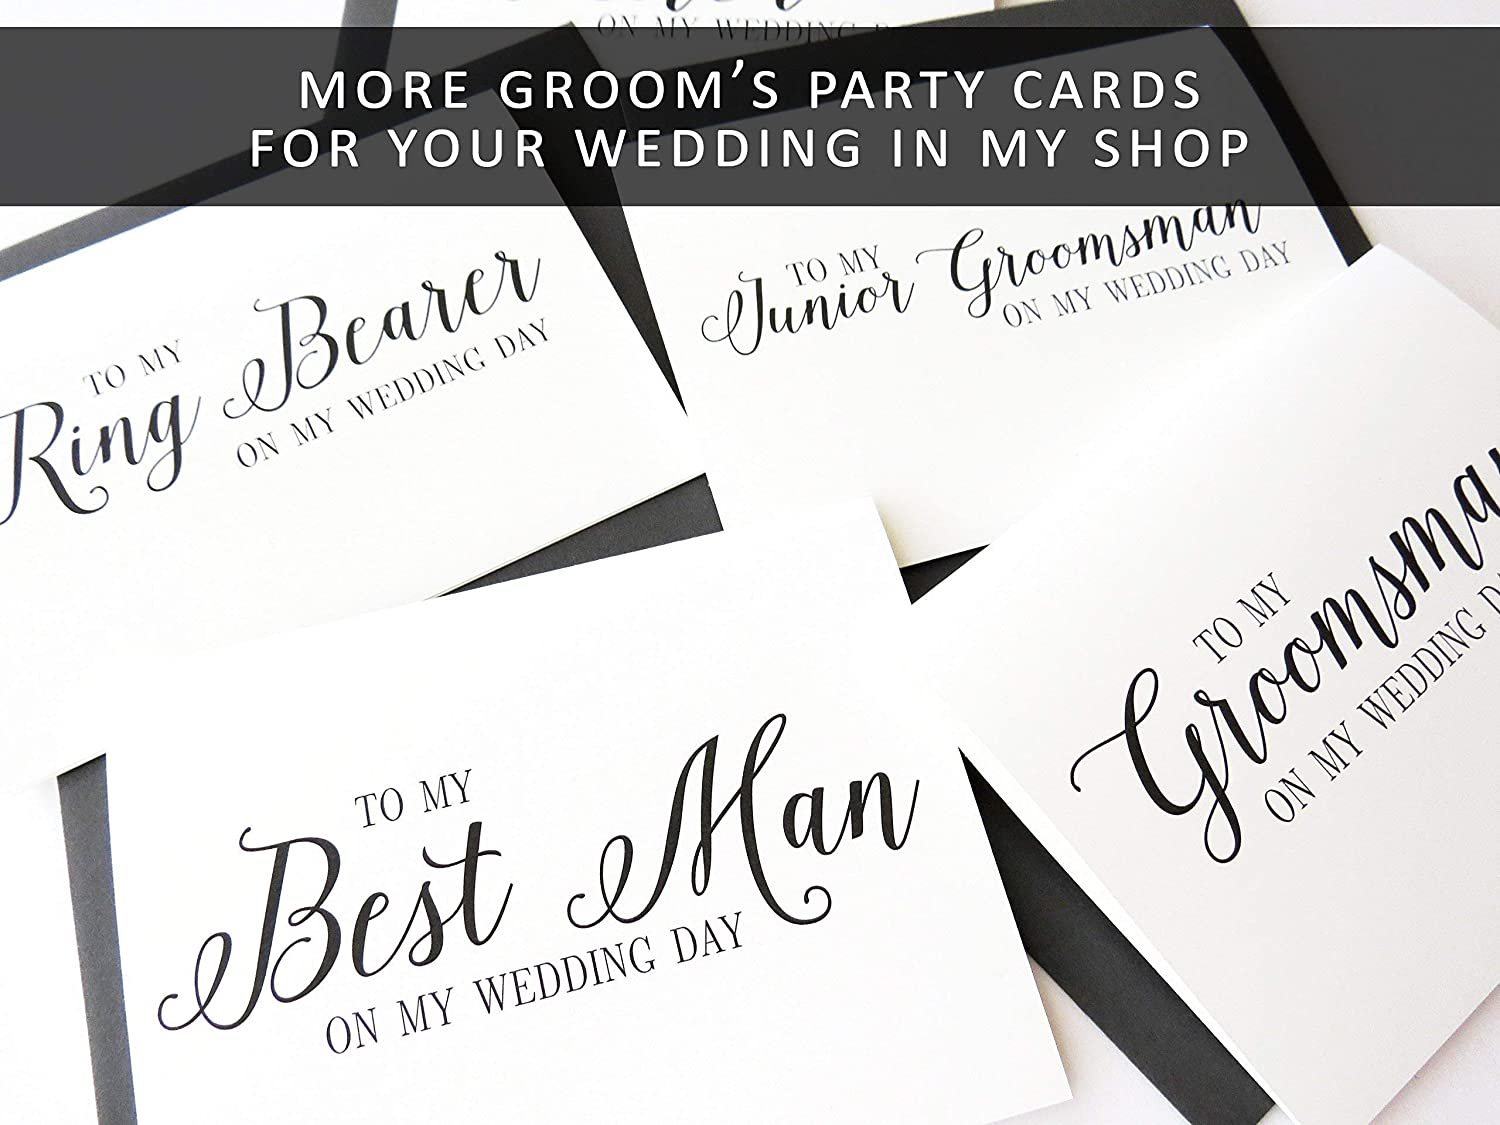 Wedding Table Sign for Cigar Bar Wedding Cigar Sign Wedding Cigar Bar UNFRAMED Your Choice of Size and Color Print Sign Wedding Signage Wedding Bar Wedding Cigars Table Sign